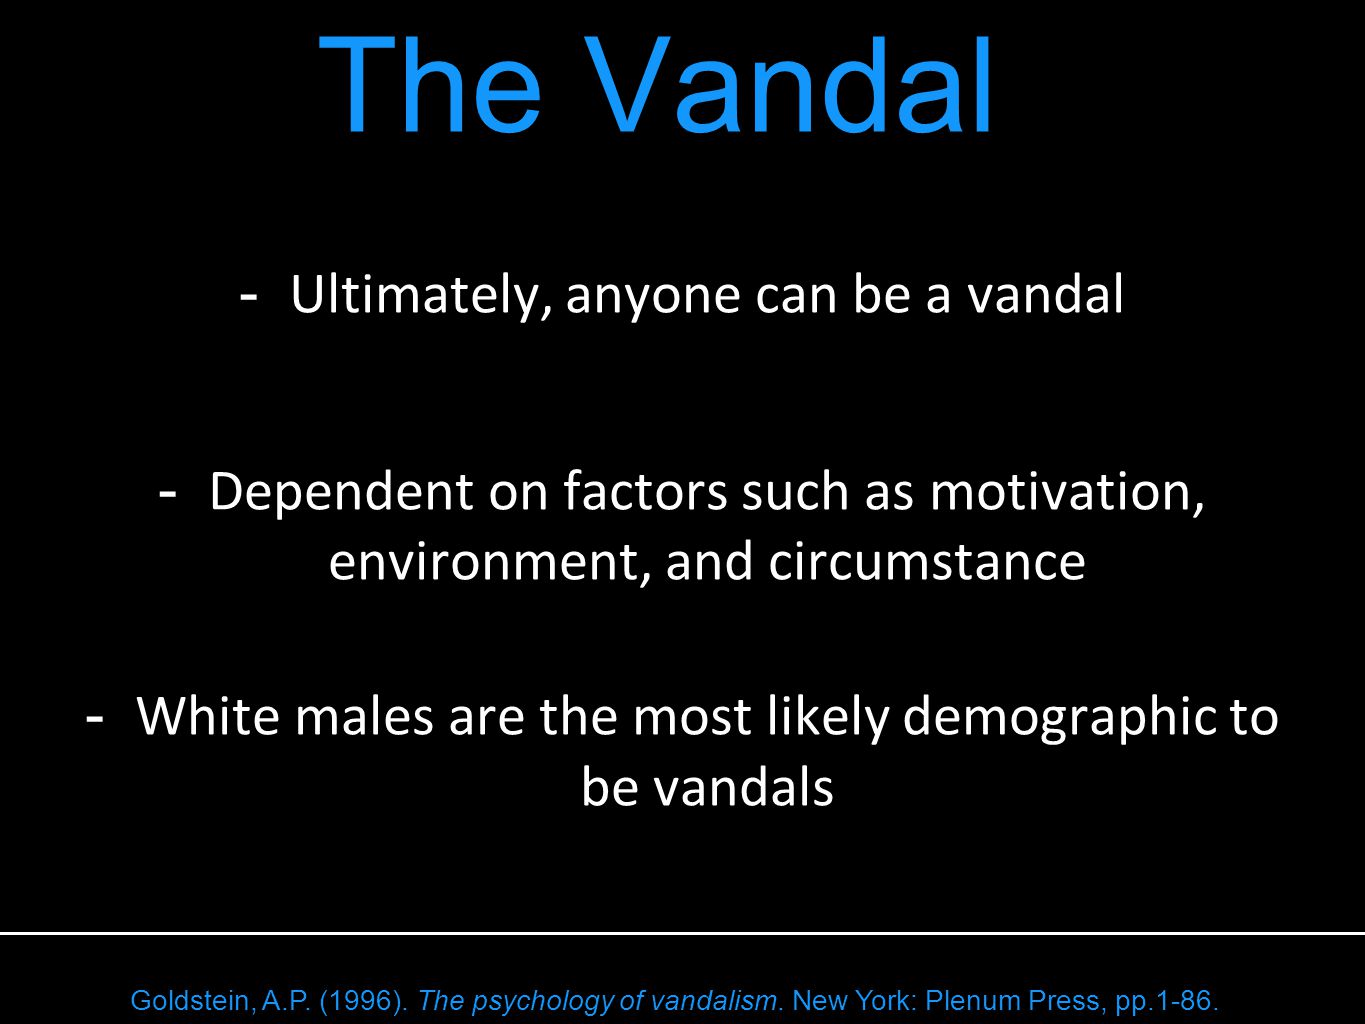 - Ultimately, anyone can be a vandal - Dependent on factors such as motivation, environment, and circumstance - White males are the most likely demographic to be vandals The Vandal Goldstein, A.P.